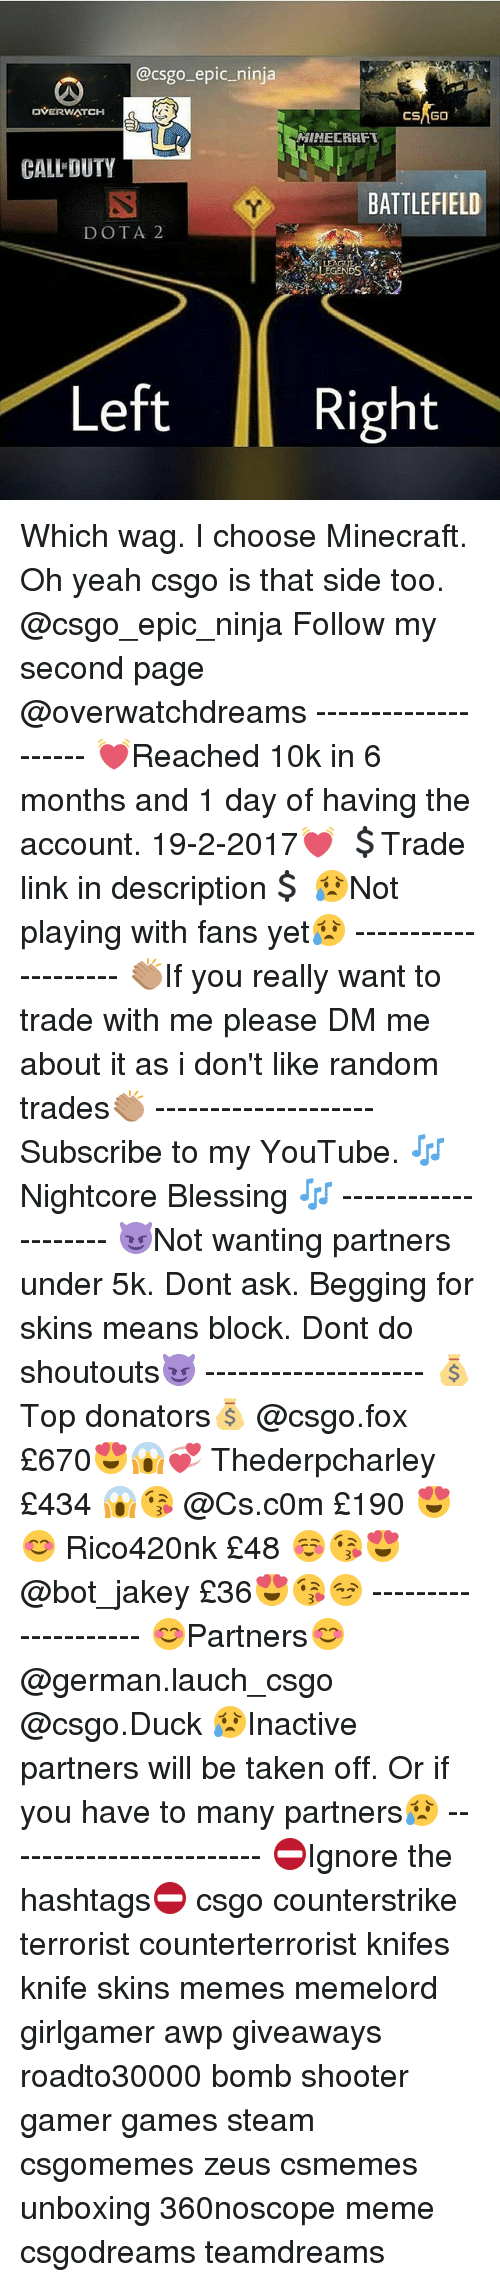 Meme, Memes, and Minecraft: @csgo epic ninja  DVERWATCH  GO  MIMECRAFT  CALL DUTY  BATTLEFIELD  DOTA 2  Left  Right Which wag. I choose Minecraft. Oh yeah csgo is that side too. @csgo_epic_ninja Follow my second page @overwatchdreams -------------------- 💓Reached 10k in 6 months and 1 day of having the account. 19-2-2017💓 💲Trade link in description💲 😥Not playing with fans yet😥 -------------------- 👏🏽If you really want to trade with me please DM me about it as i don't like random trades👏🏽 -------------------- Subscribe to my YouTube. 🎶Nightcore Blessing 🎶 -------------------- 😈Not wanting partners under 5k. Dont ask. Begging for skins means block. Dont do shoutouts😈 -------------------- 💰Top donators💰 @csgo.fox £670😍😱💞 Thederpcharley £434 😱😘 @Cs.c0m £190 😍😊 Rico420nk £48 ☺😘😍 @bot_jakey £36😍😘😏 -------------------- 😊Partners😊 @german.lauch_csgo @csgo.Duck 😥Inactive partners will be taken off. Or if you have to many partners😥 ------------------------ ⛔Ignore the hashtags⛔ csgo counterstrike terrorist counterterrorist knifes knife skins memes memelord girlgamer awp giveaways roadto30000 bomb shooter gamer games steam csgomemes zeus csmemes unboxing 360noscope meme csgodreams teamdreams